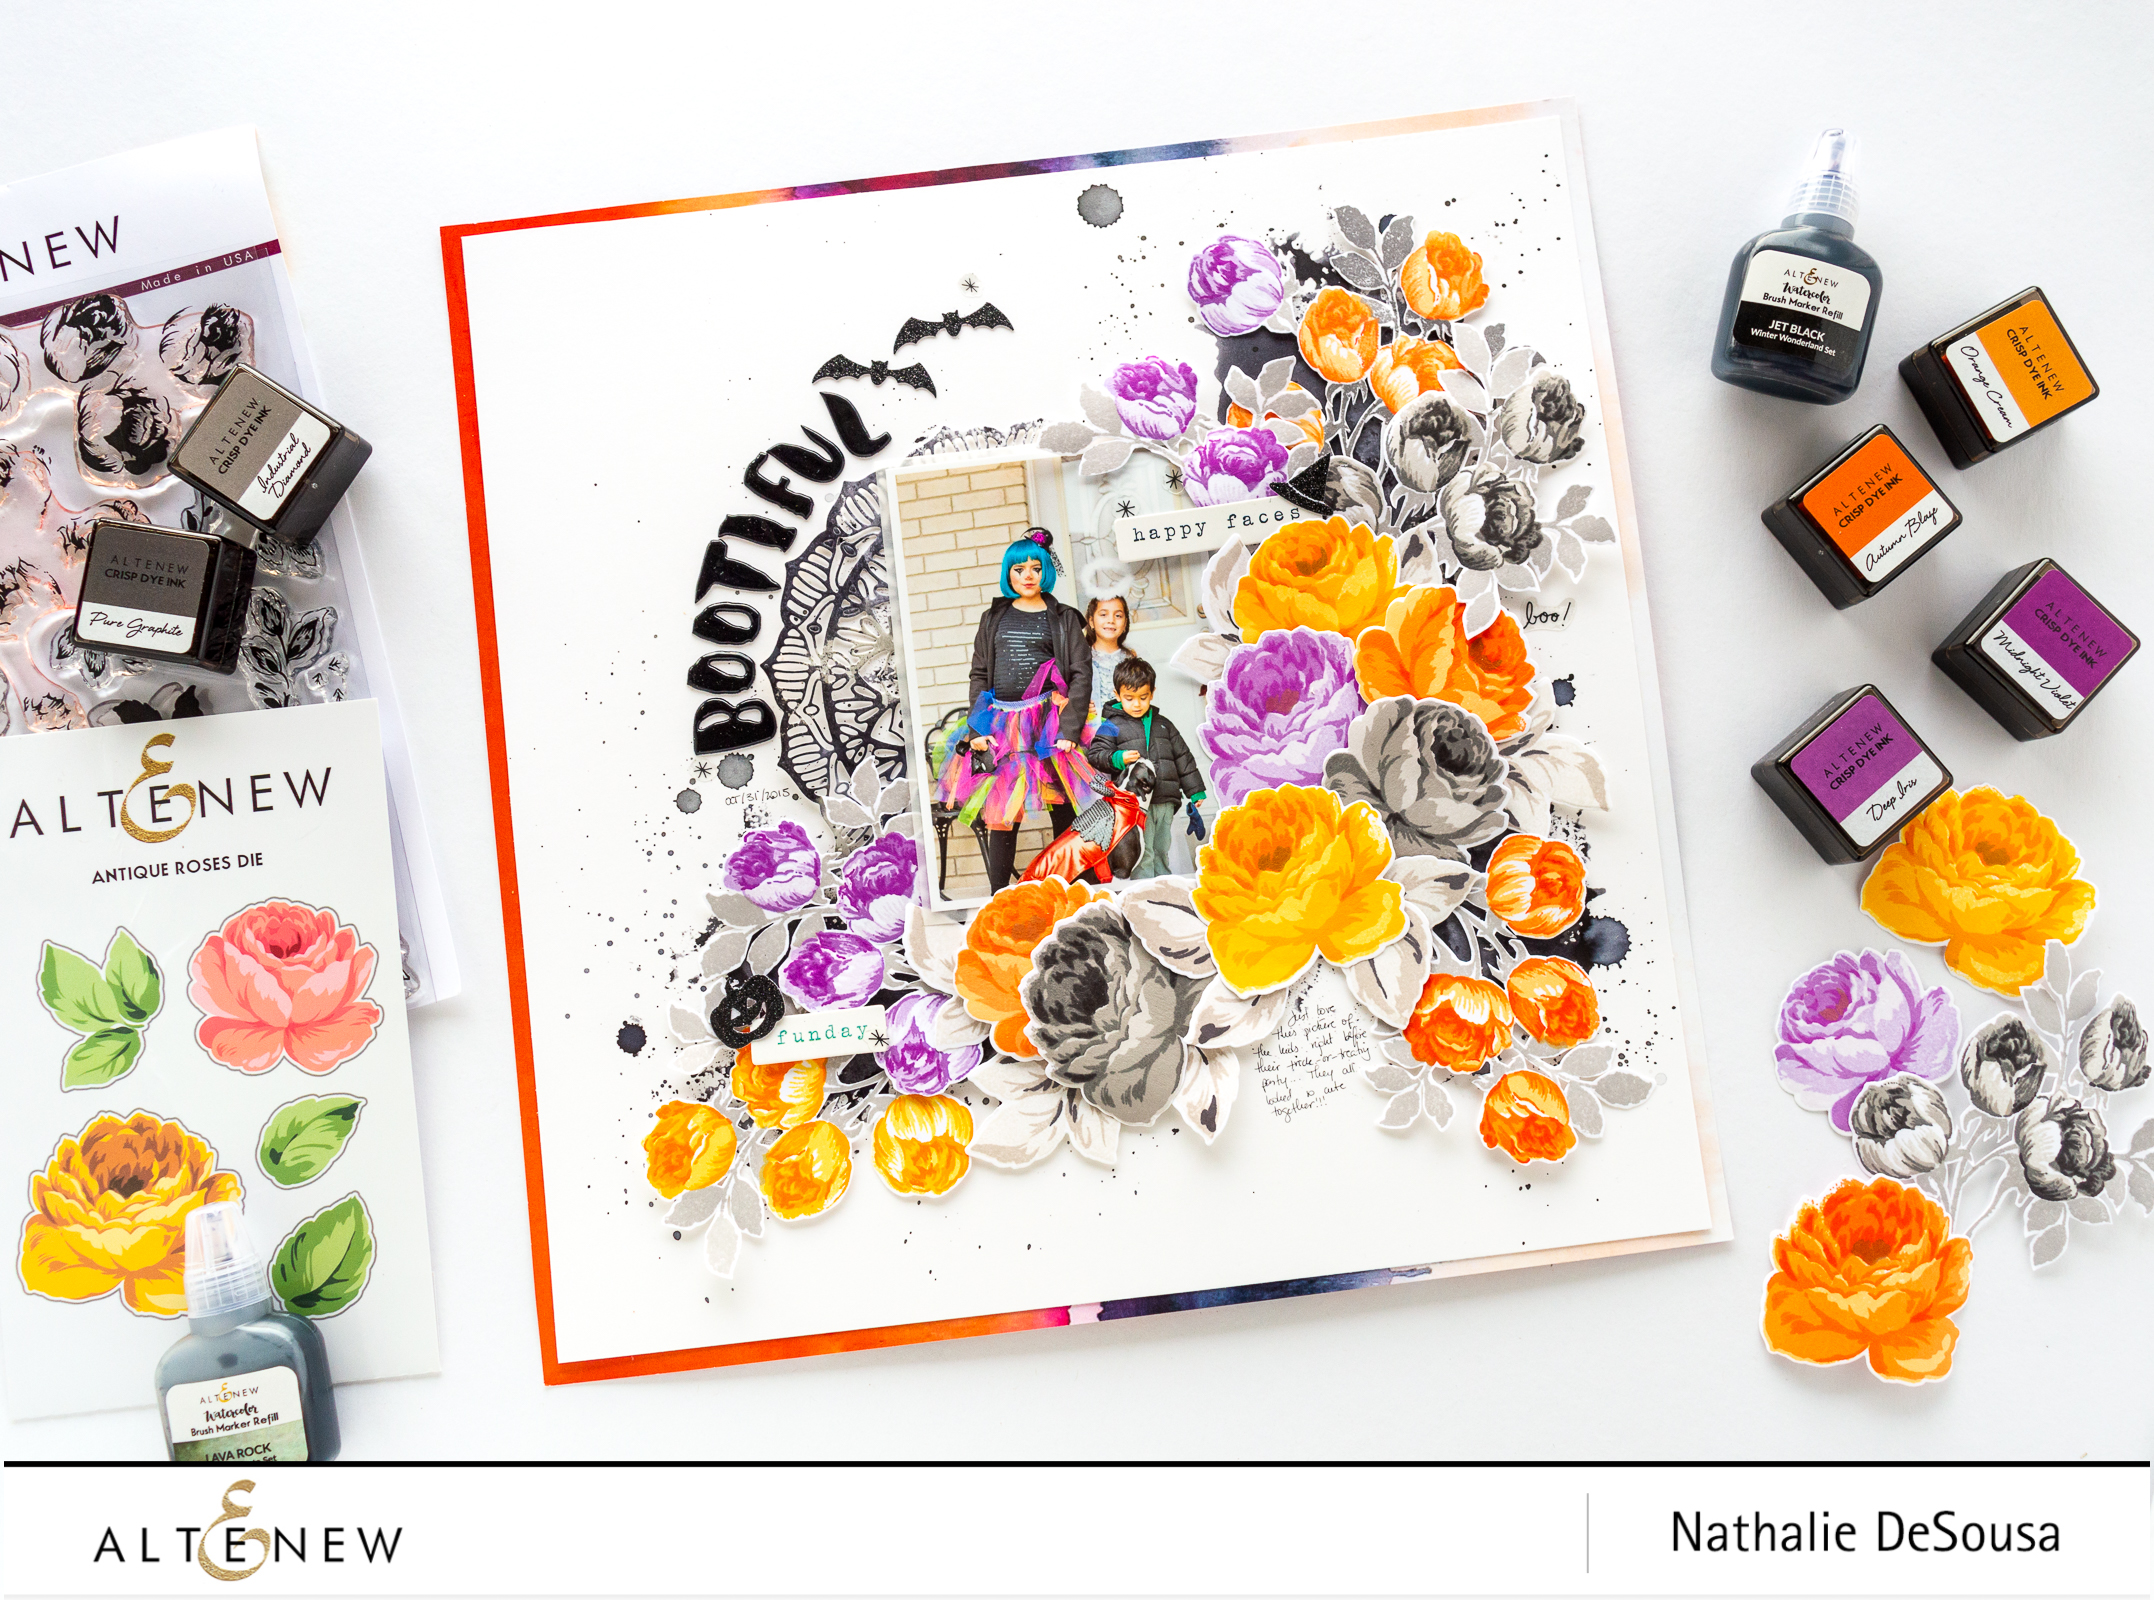 @Altenew_HALLOWEEN LAYOUT WITH ALTENEW ANTIQUE ROSES AND SWEET ROSE BOUQUET STAMPS by NATHALIE DESOUSA